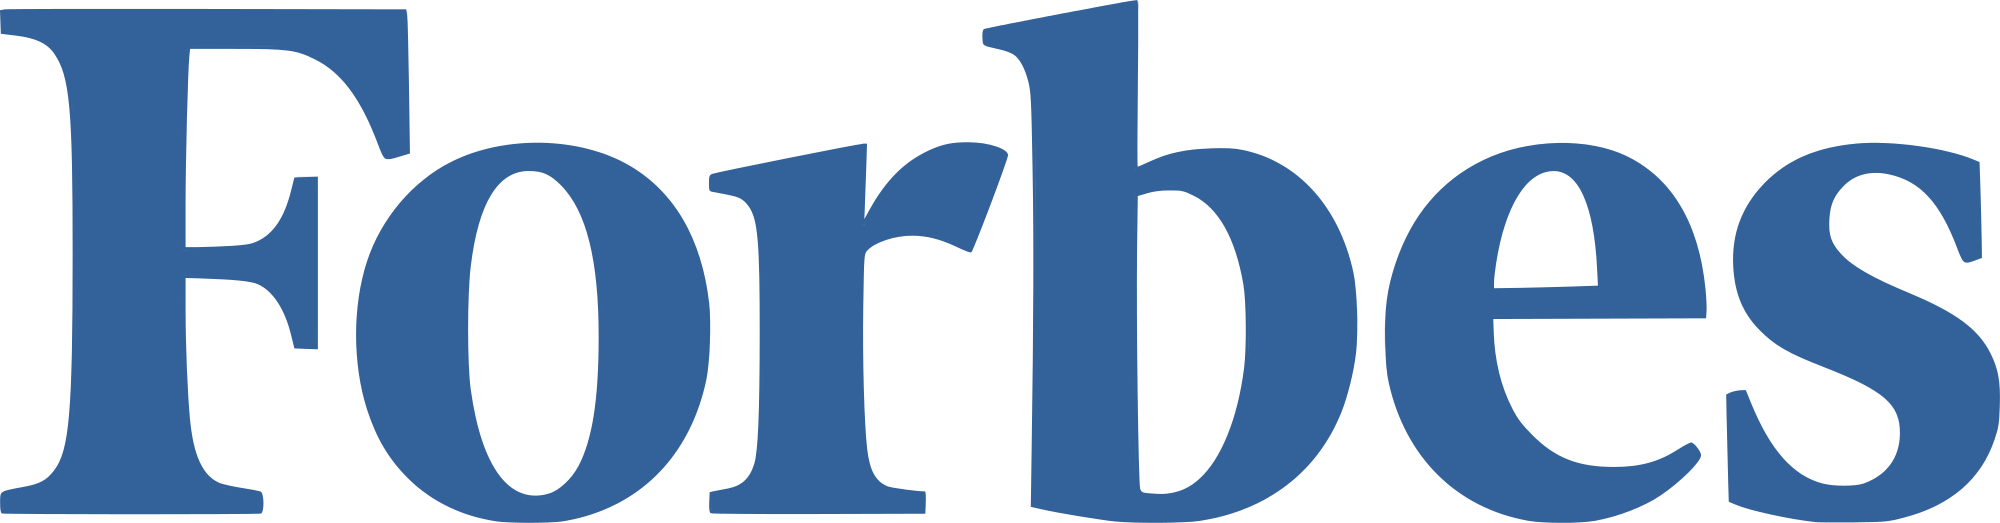 Open Hdpng.com  - Forbes, Transparent background PNG HD thumbnail